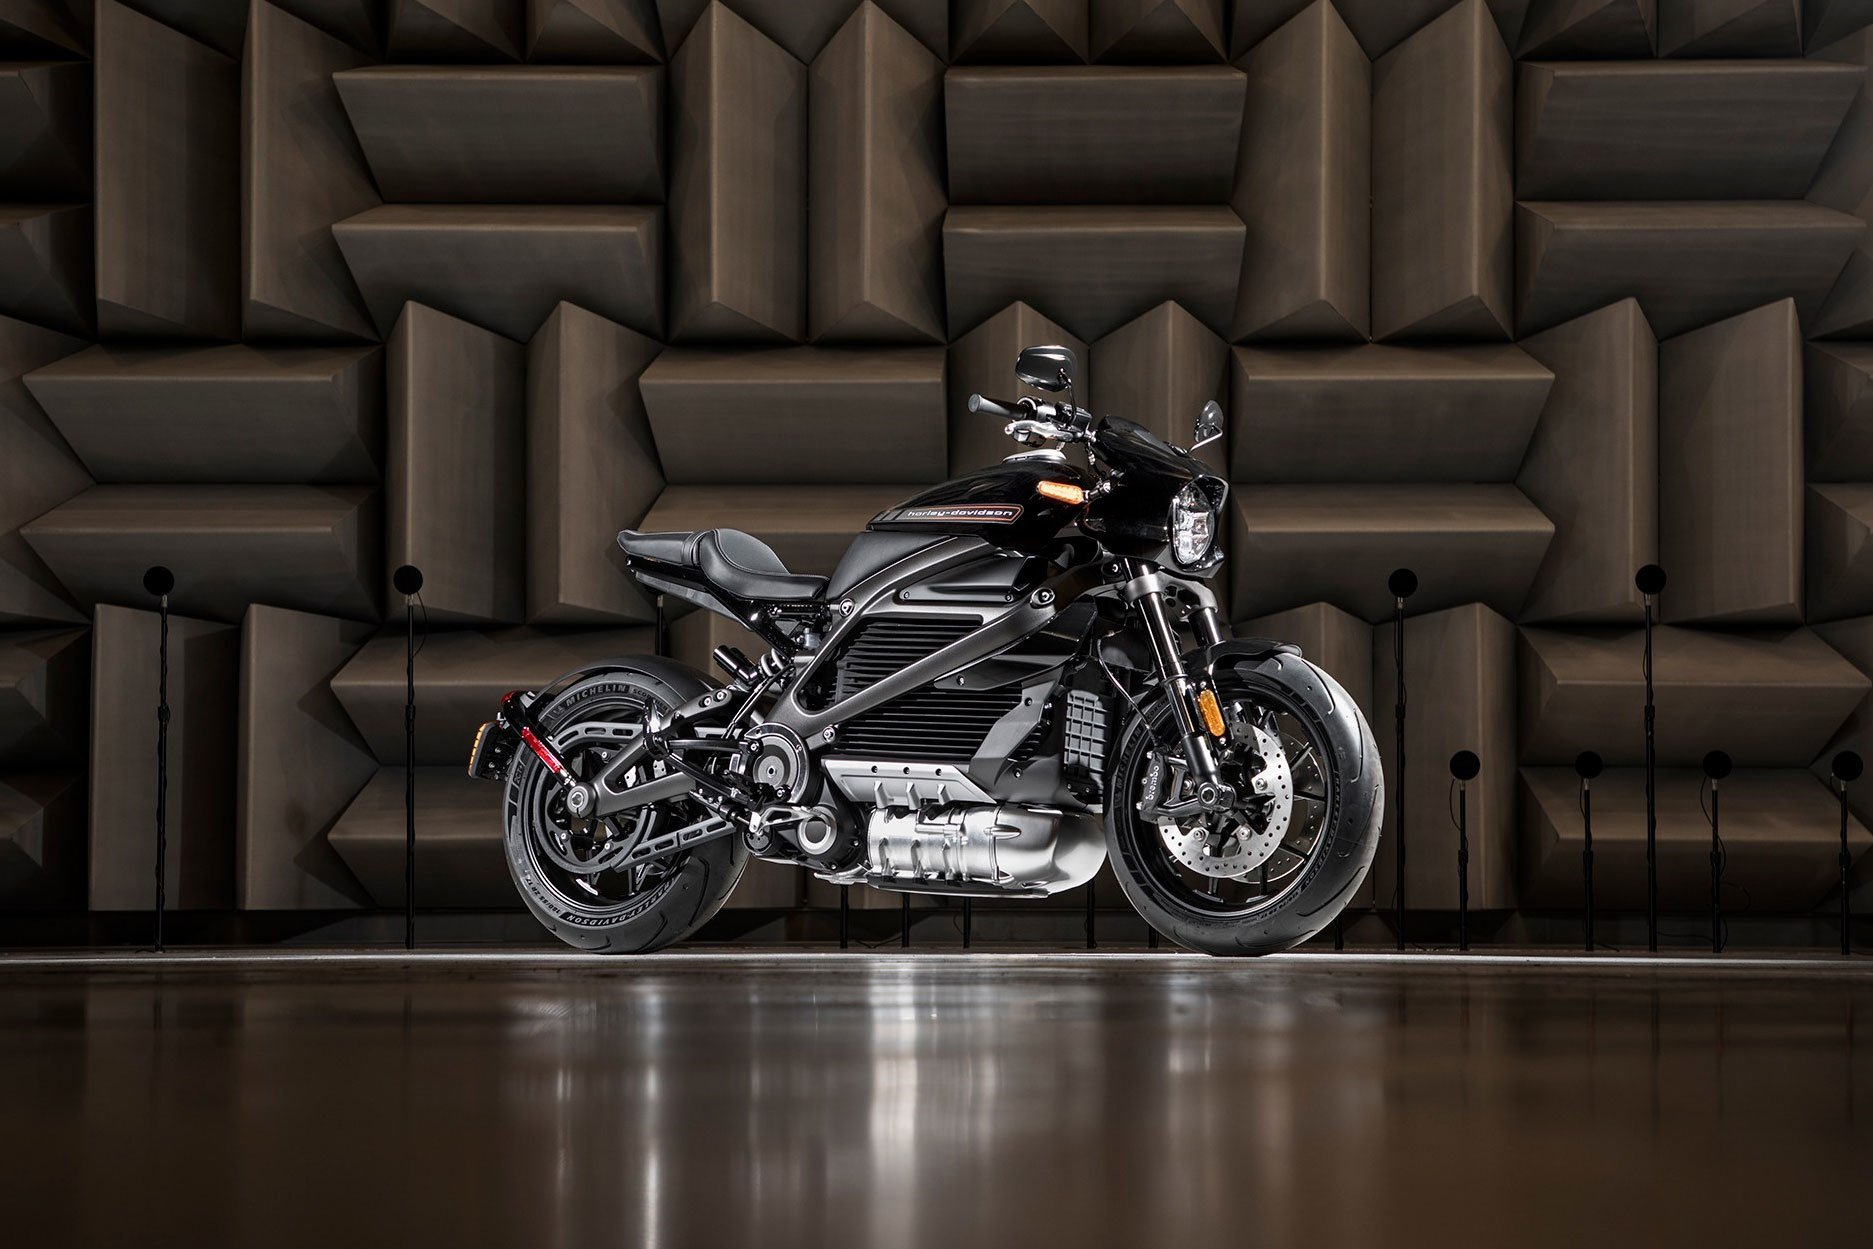 Harley-Davidson will debut its electric LiveWire motorcycle in 2019